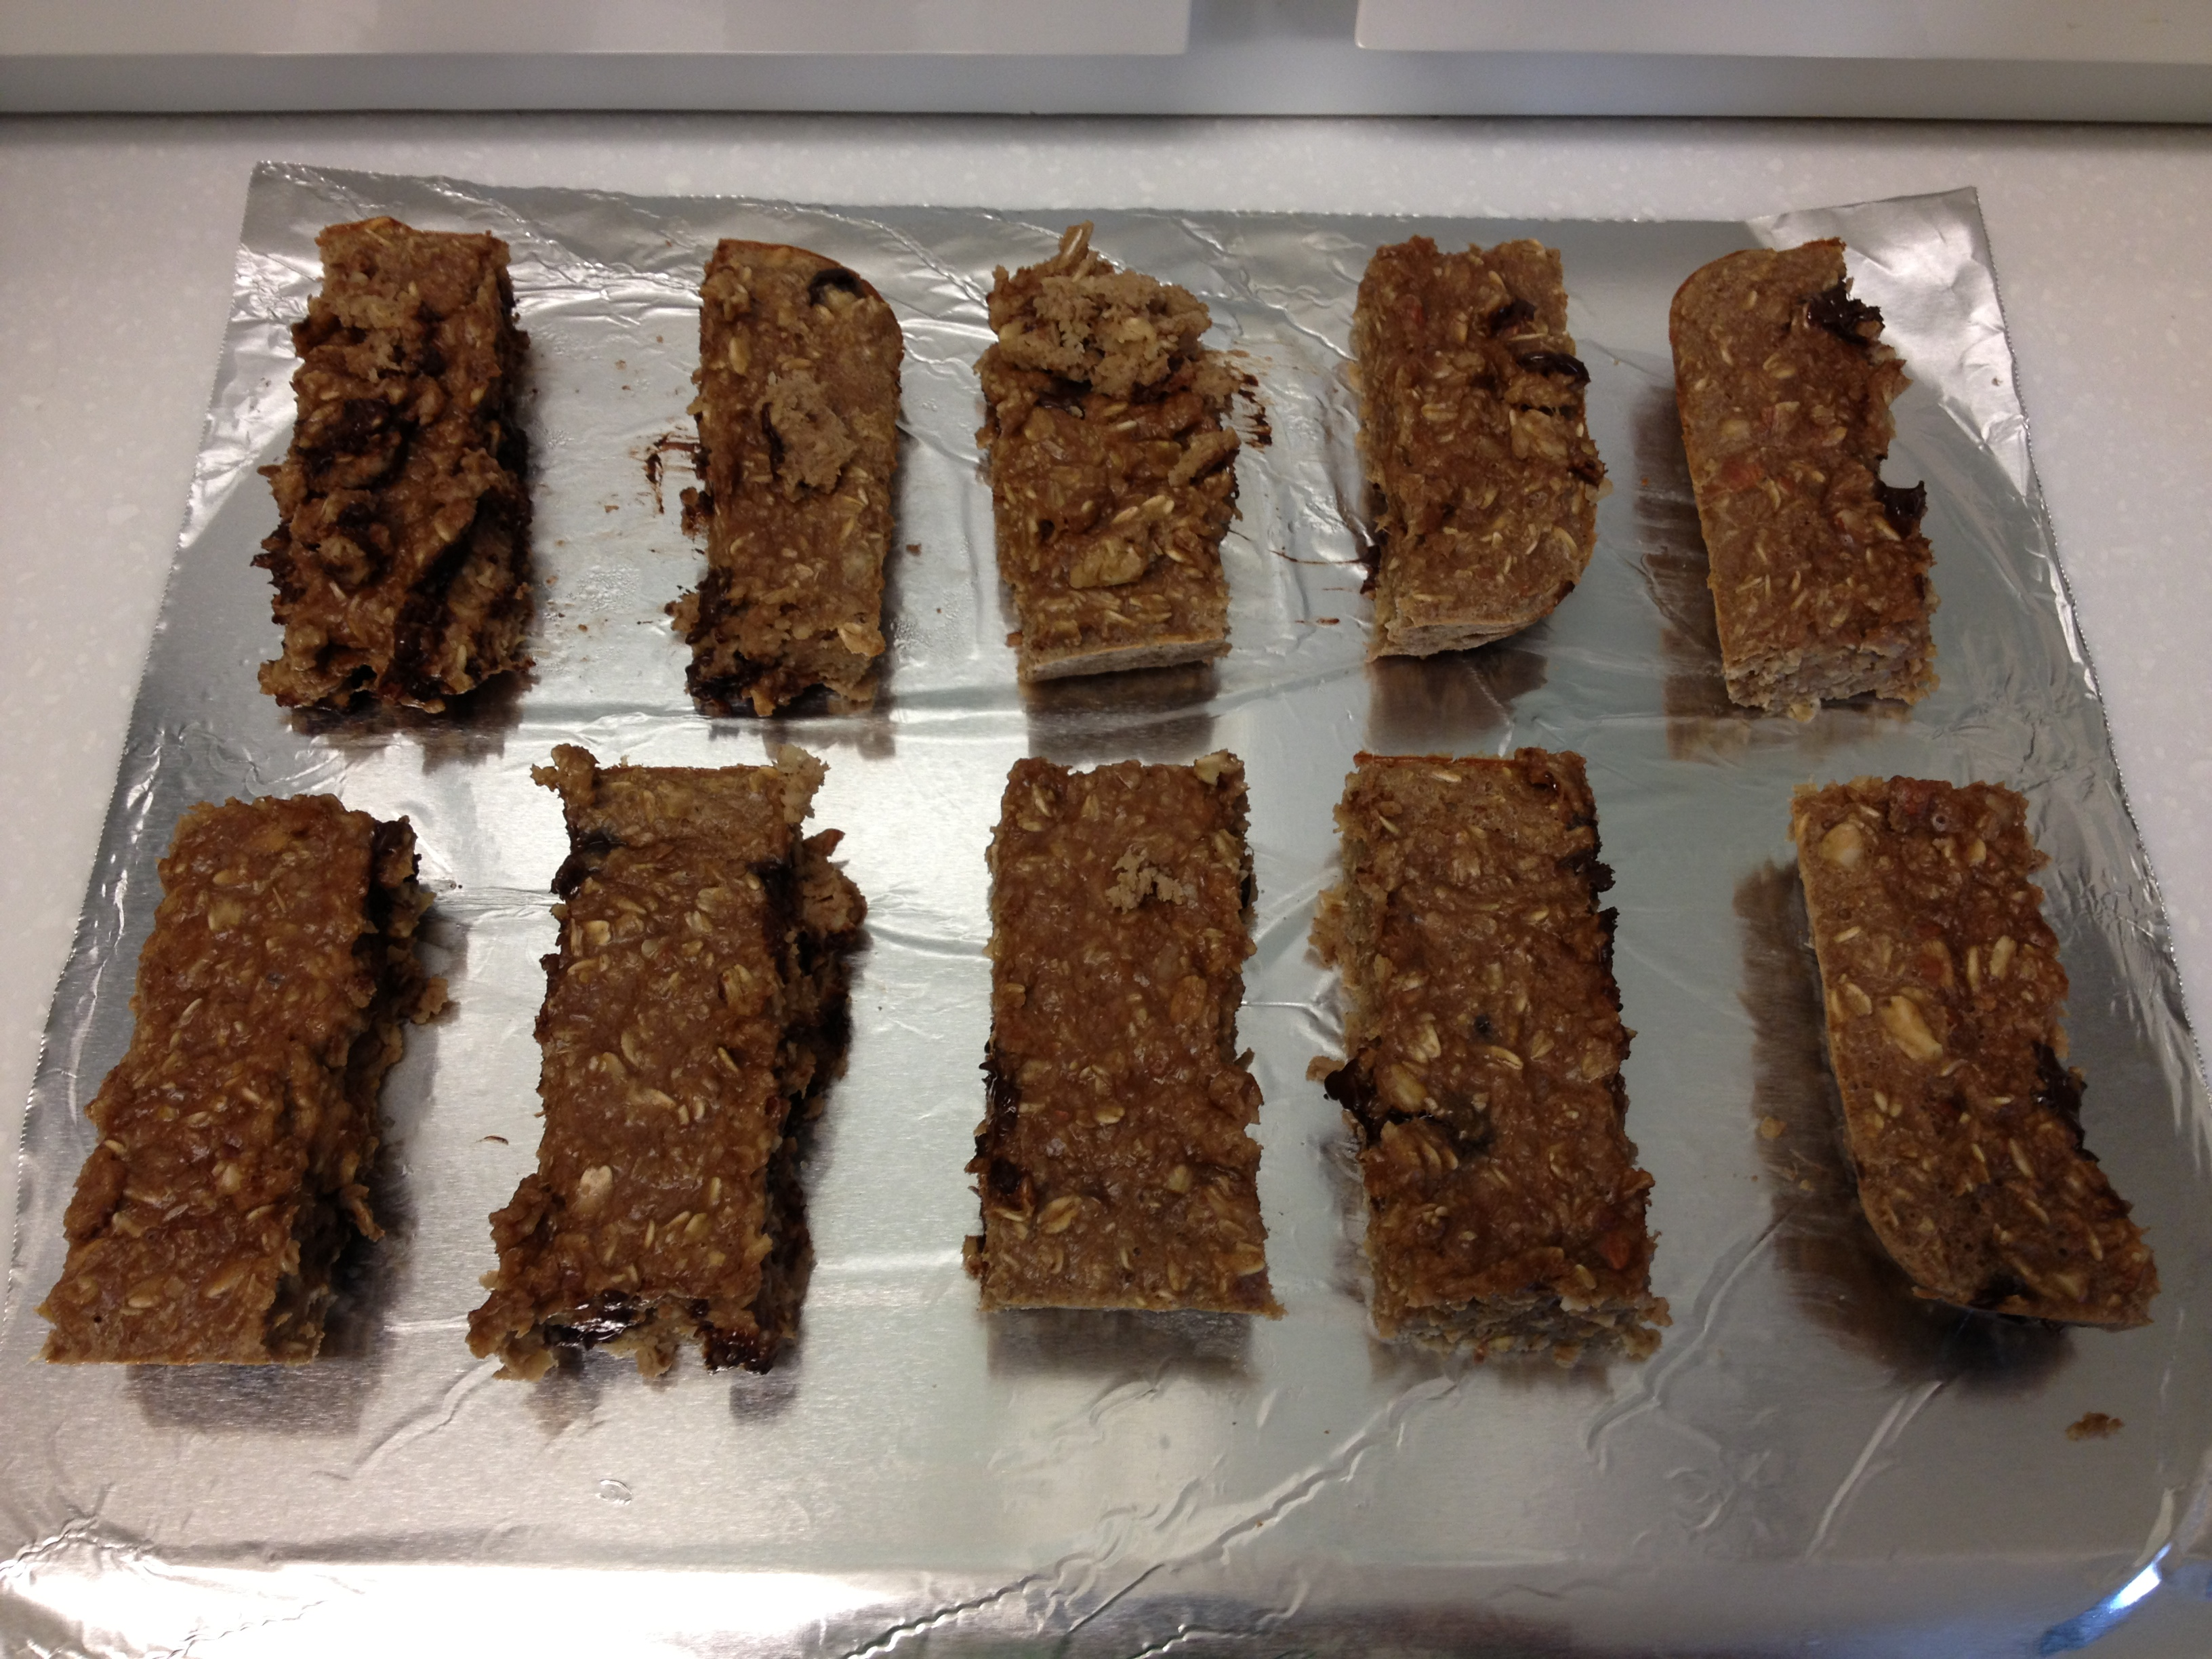 More On What I Eat And Homemade Protein Bars